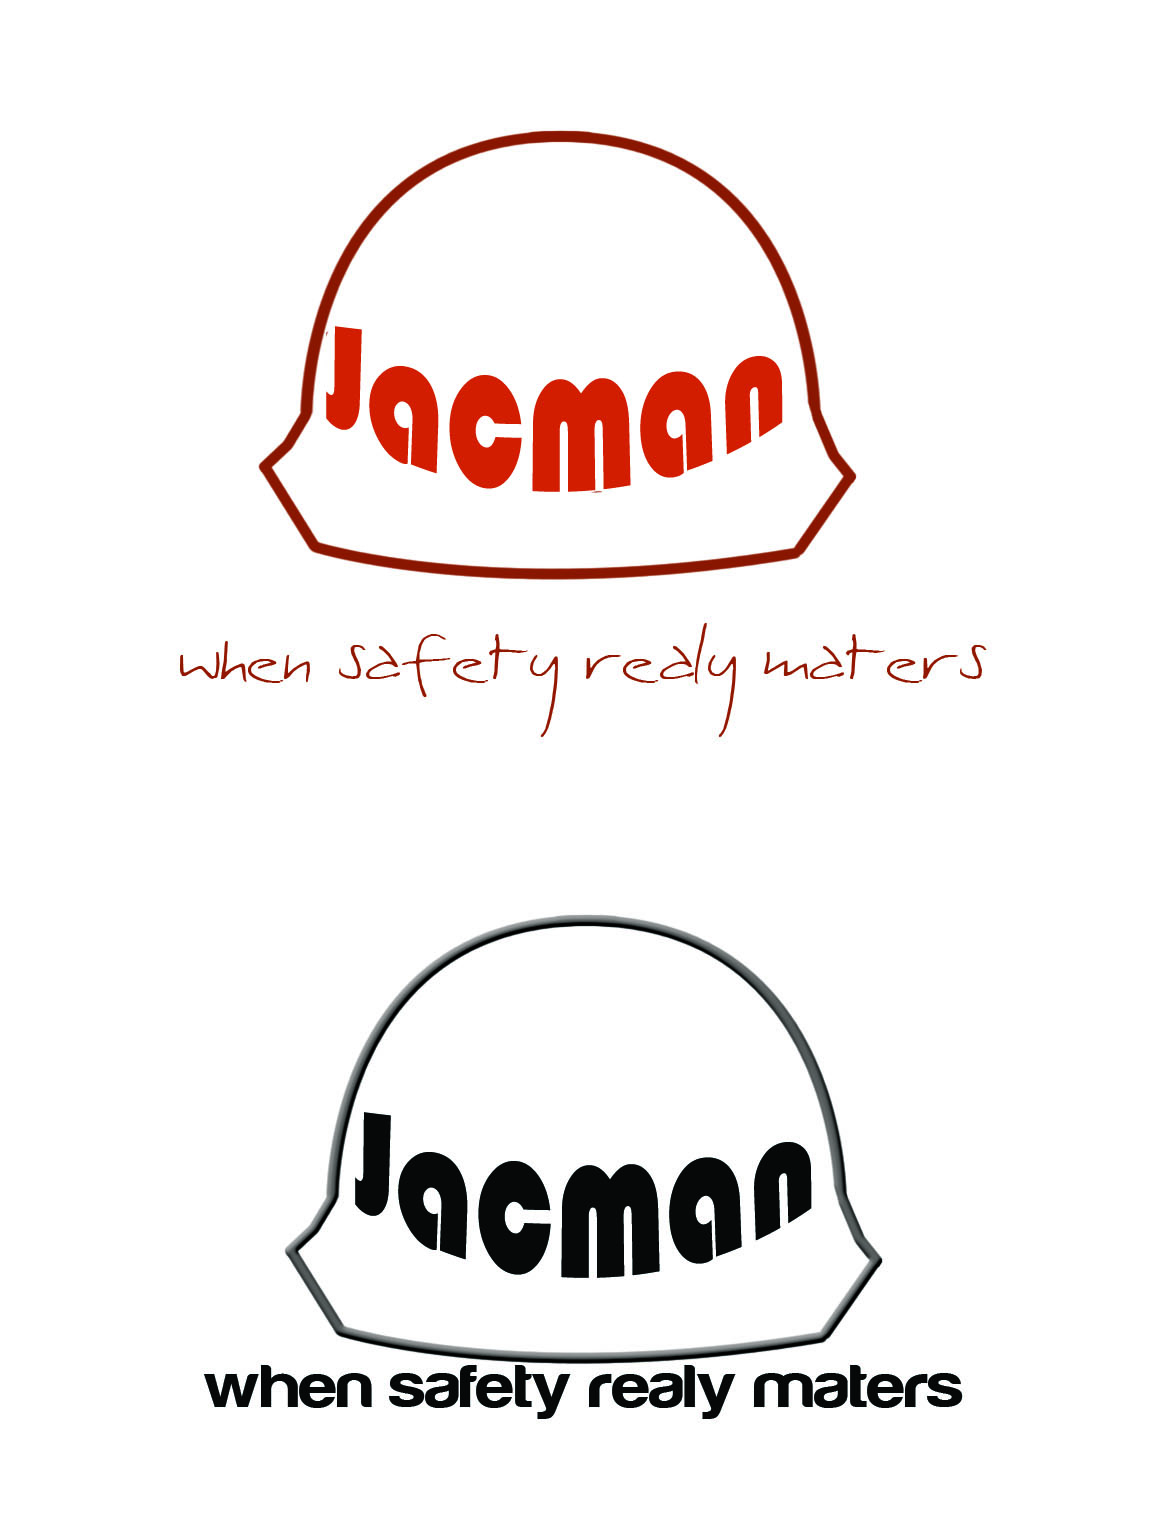 Logo Design by Arqui ACOSTA - Entry No. 110 in the Logo Design Contest The Jacman Group Logo Design.